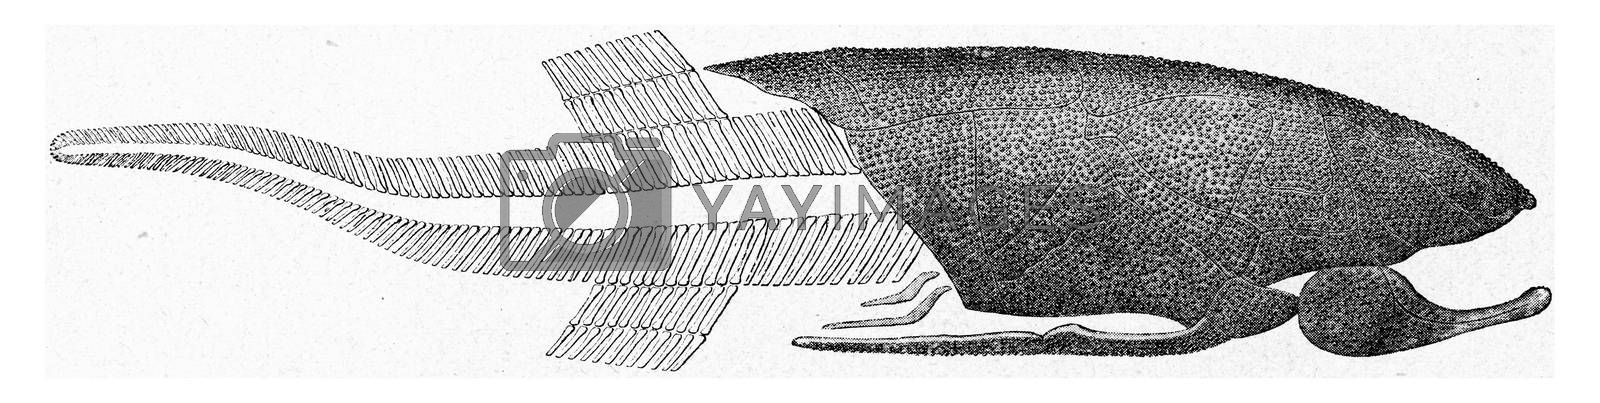 Reconstitution of a Devonian fish, vintage engraved illustration. From the Universe and Humanity, 1910.